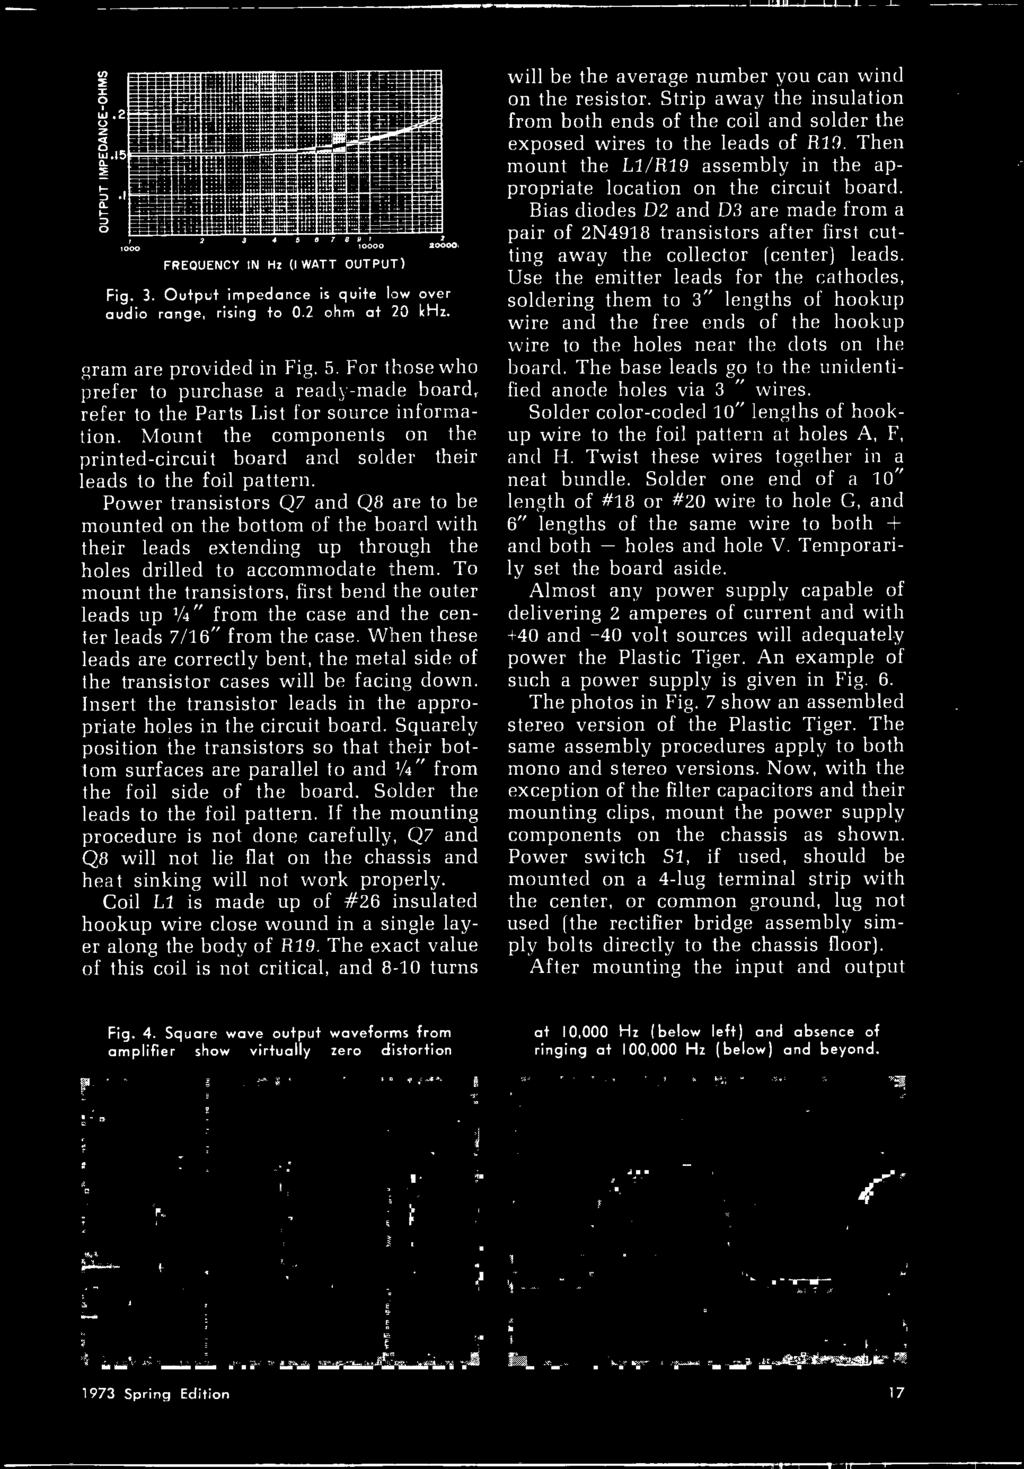 Handbook Experimenters 1973 Electronic Decoder Build The Cbs Ee Programmable Integrated Circuitcard Music Circuitintegrated Circuits For Those Who Prefer To Purchase A Ready Made Board Refer Parts